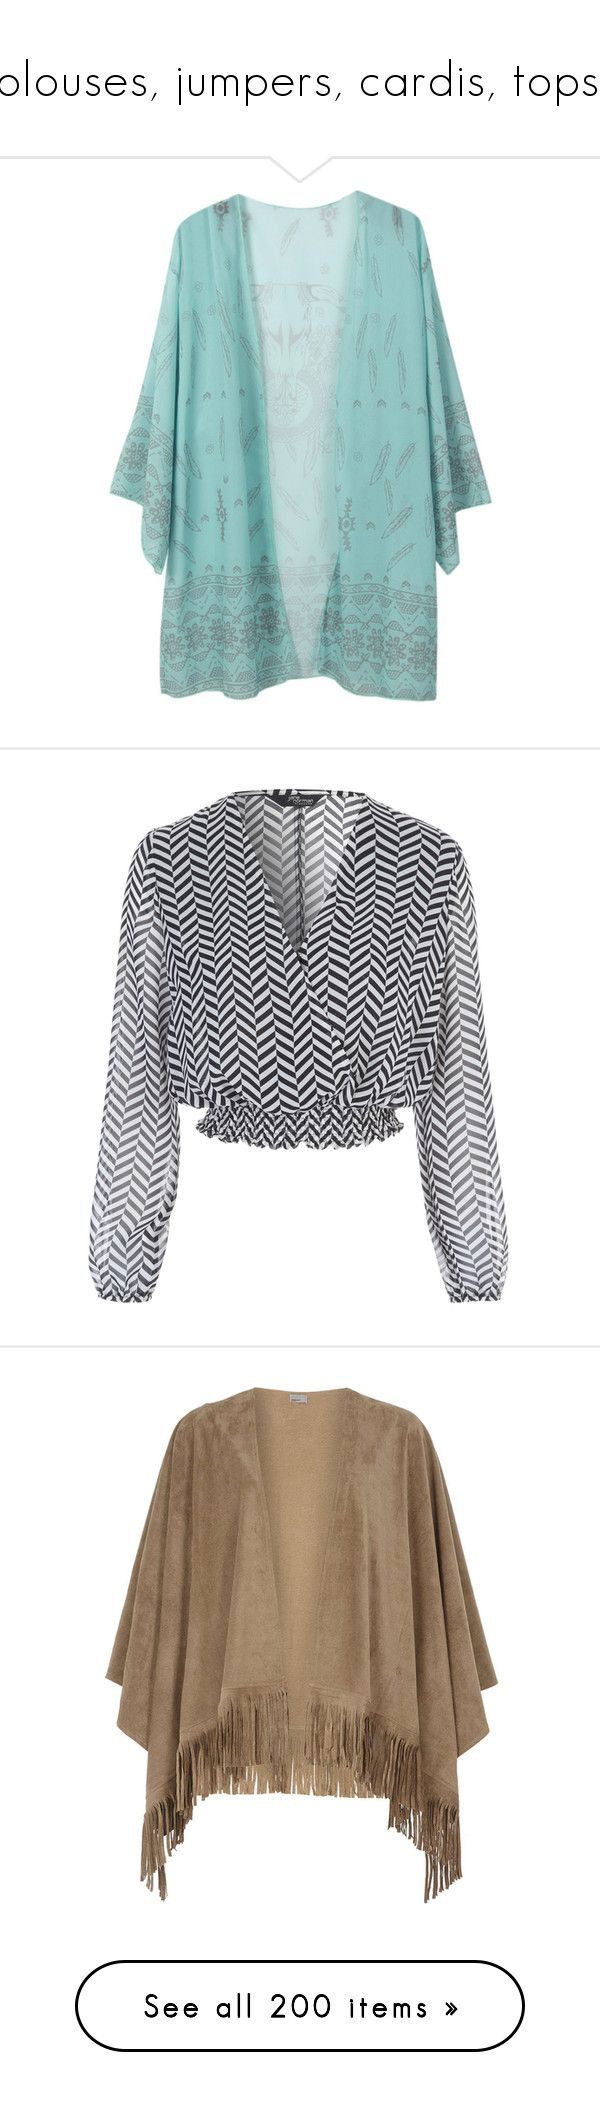 """""""blouses, jumpers, cardis, tops."""" by julidrops ❤ liked on Polyvore featuring kimono, tops, outerwear, blouses, chevron blouses, chiffon tops, chevron print blouse, chevron print tops, chiffon blouses and white"""